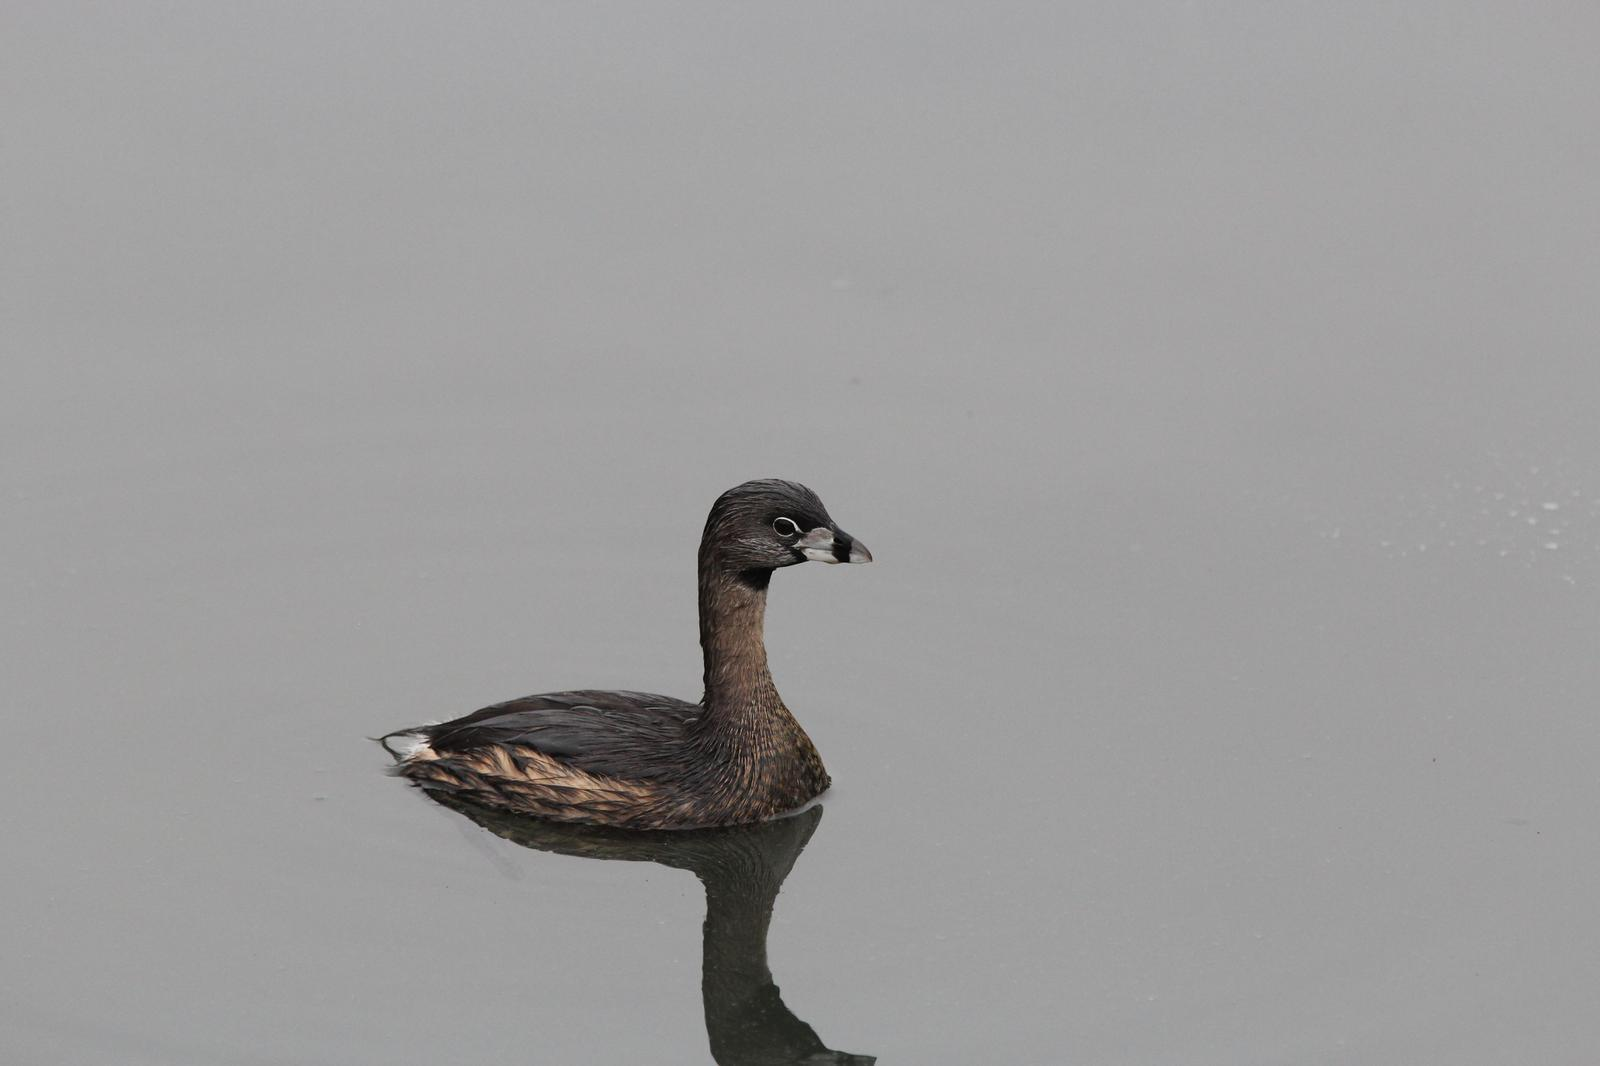 Pied-billed Grebe Photo by Kristy Baker